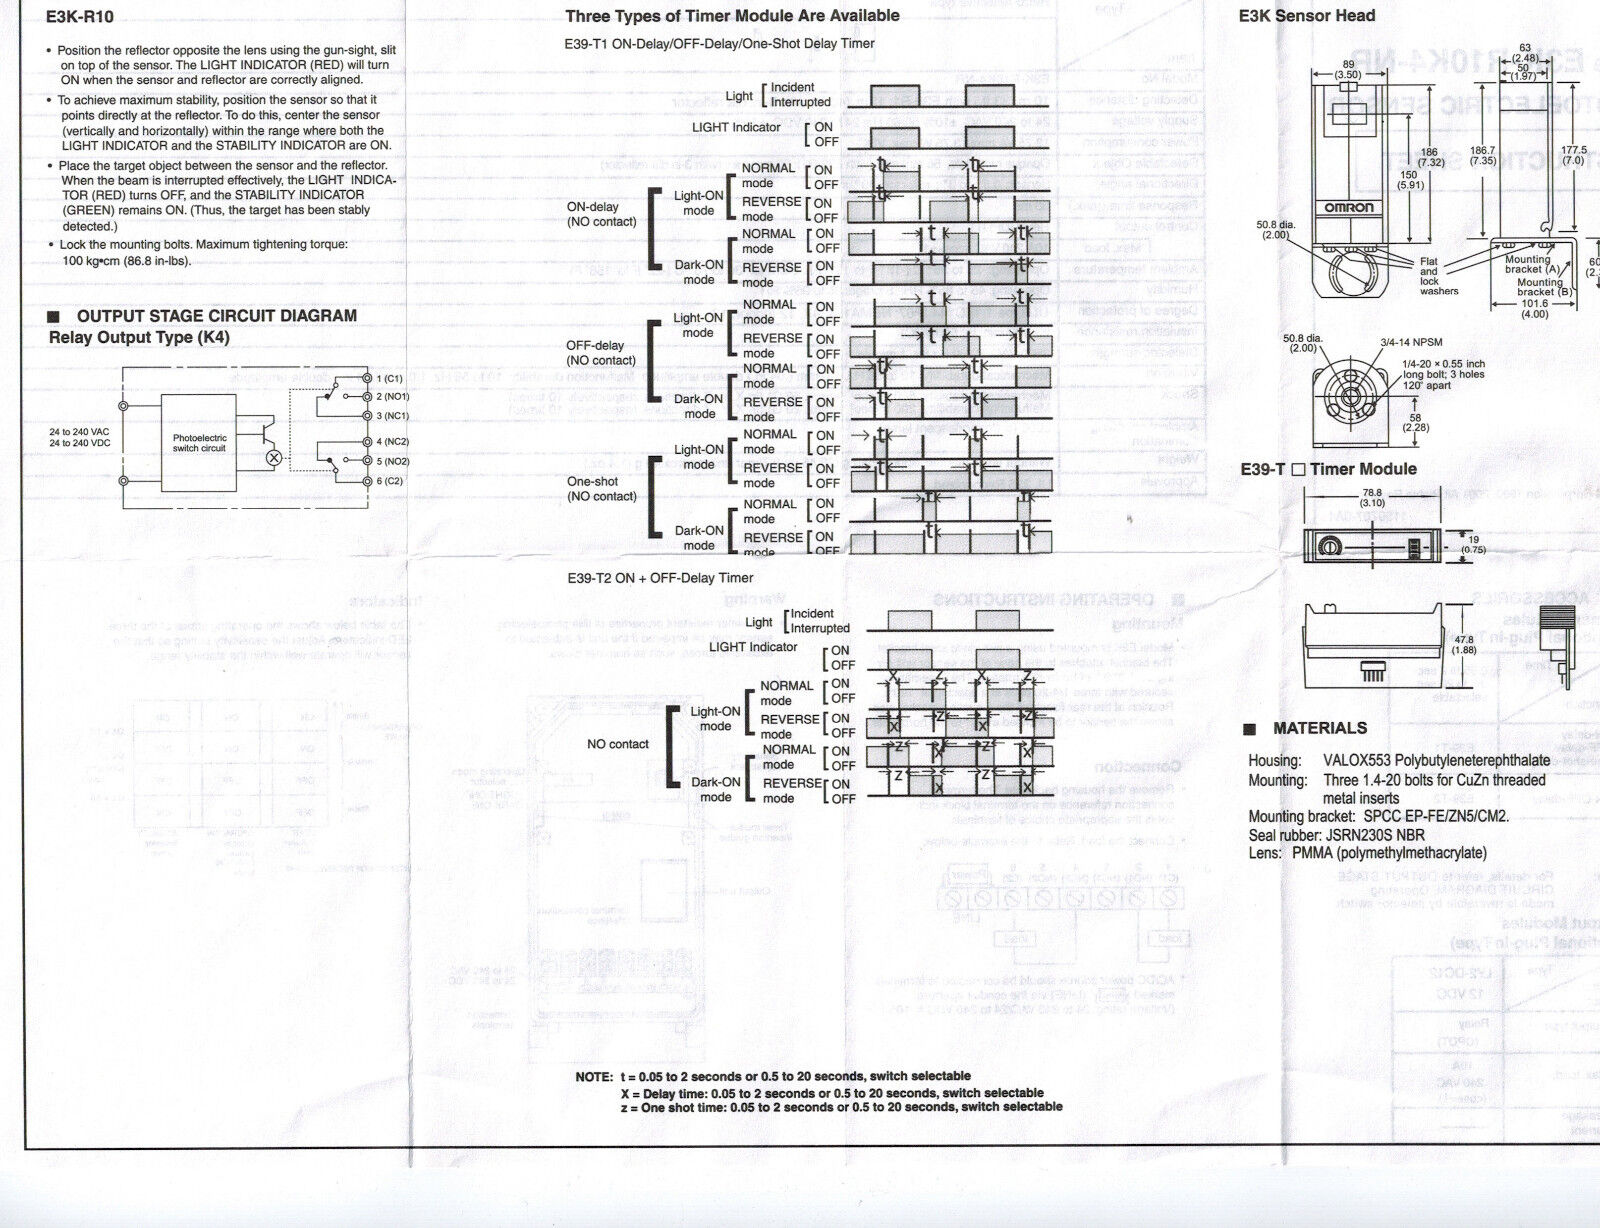 Omron E3k R10k4 Nr Wiring Diagram Free Download Oasis Dl